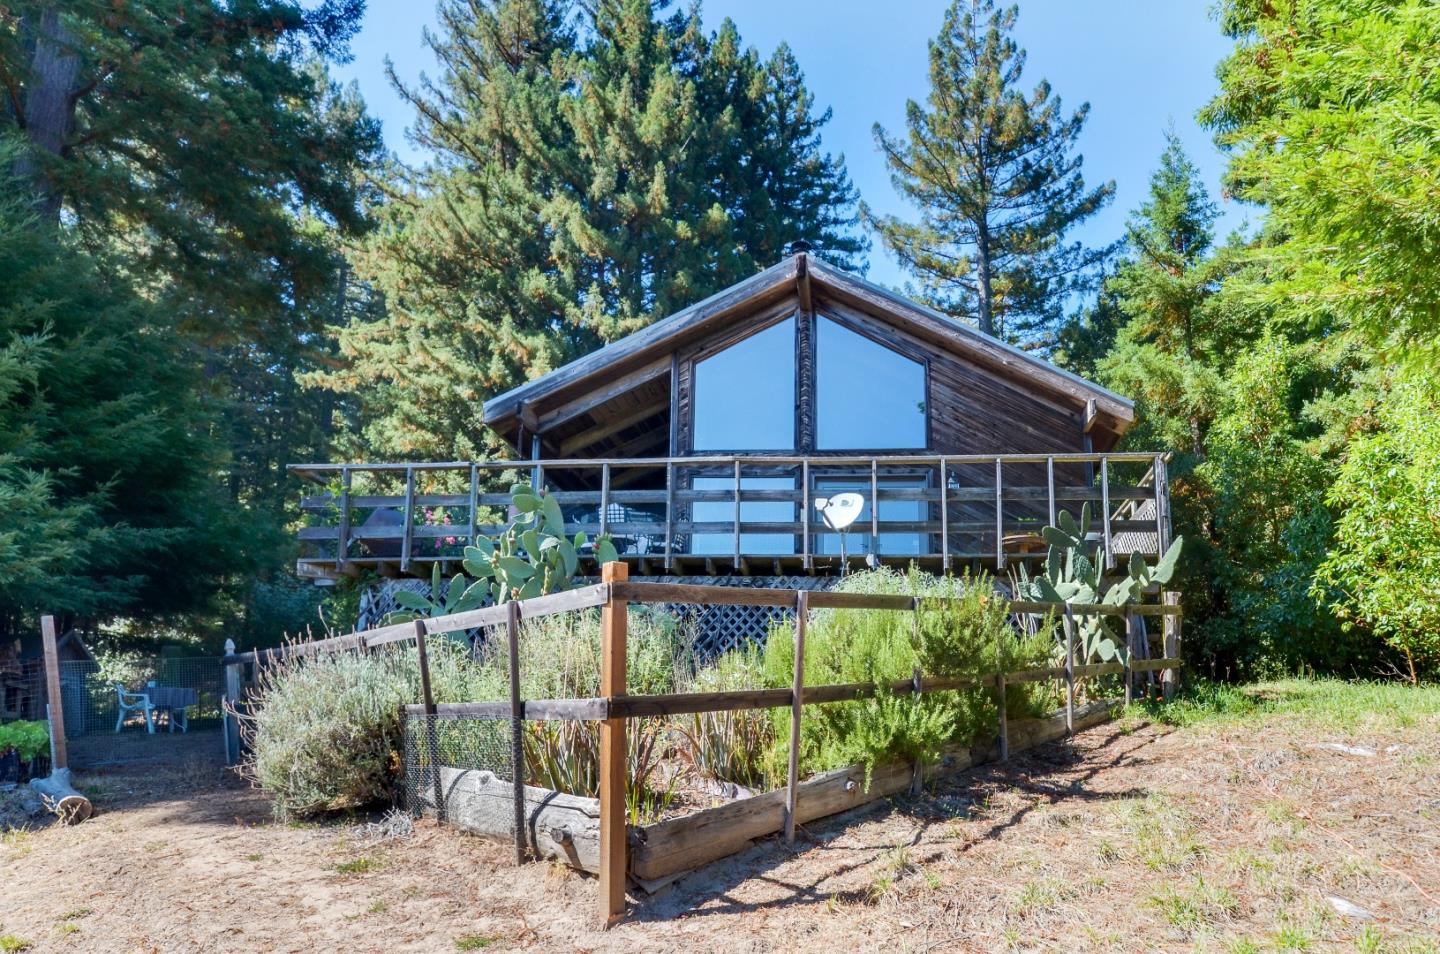 Single Family Home for Sale at 28372 Big Basin Way Boulder Creek, California 95006 United States